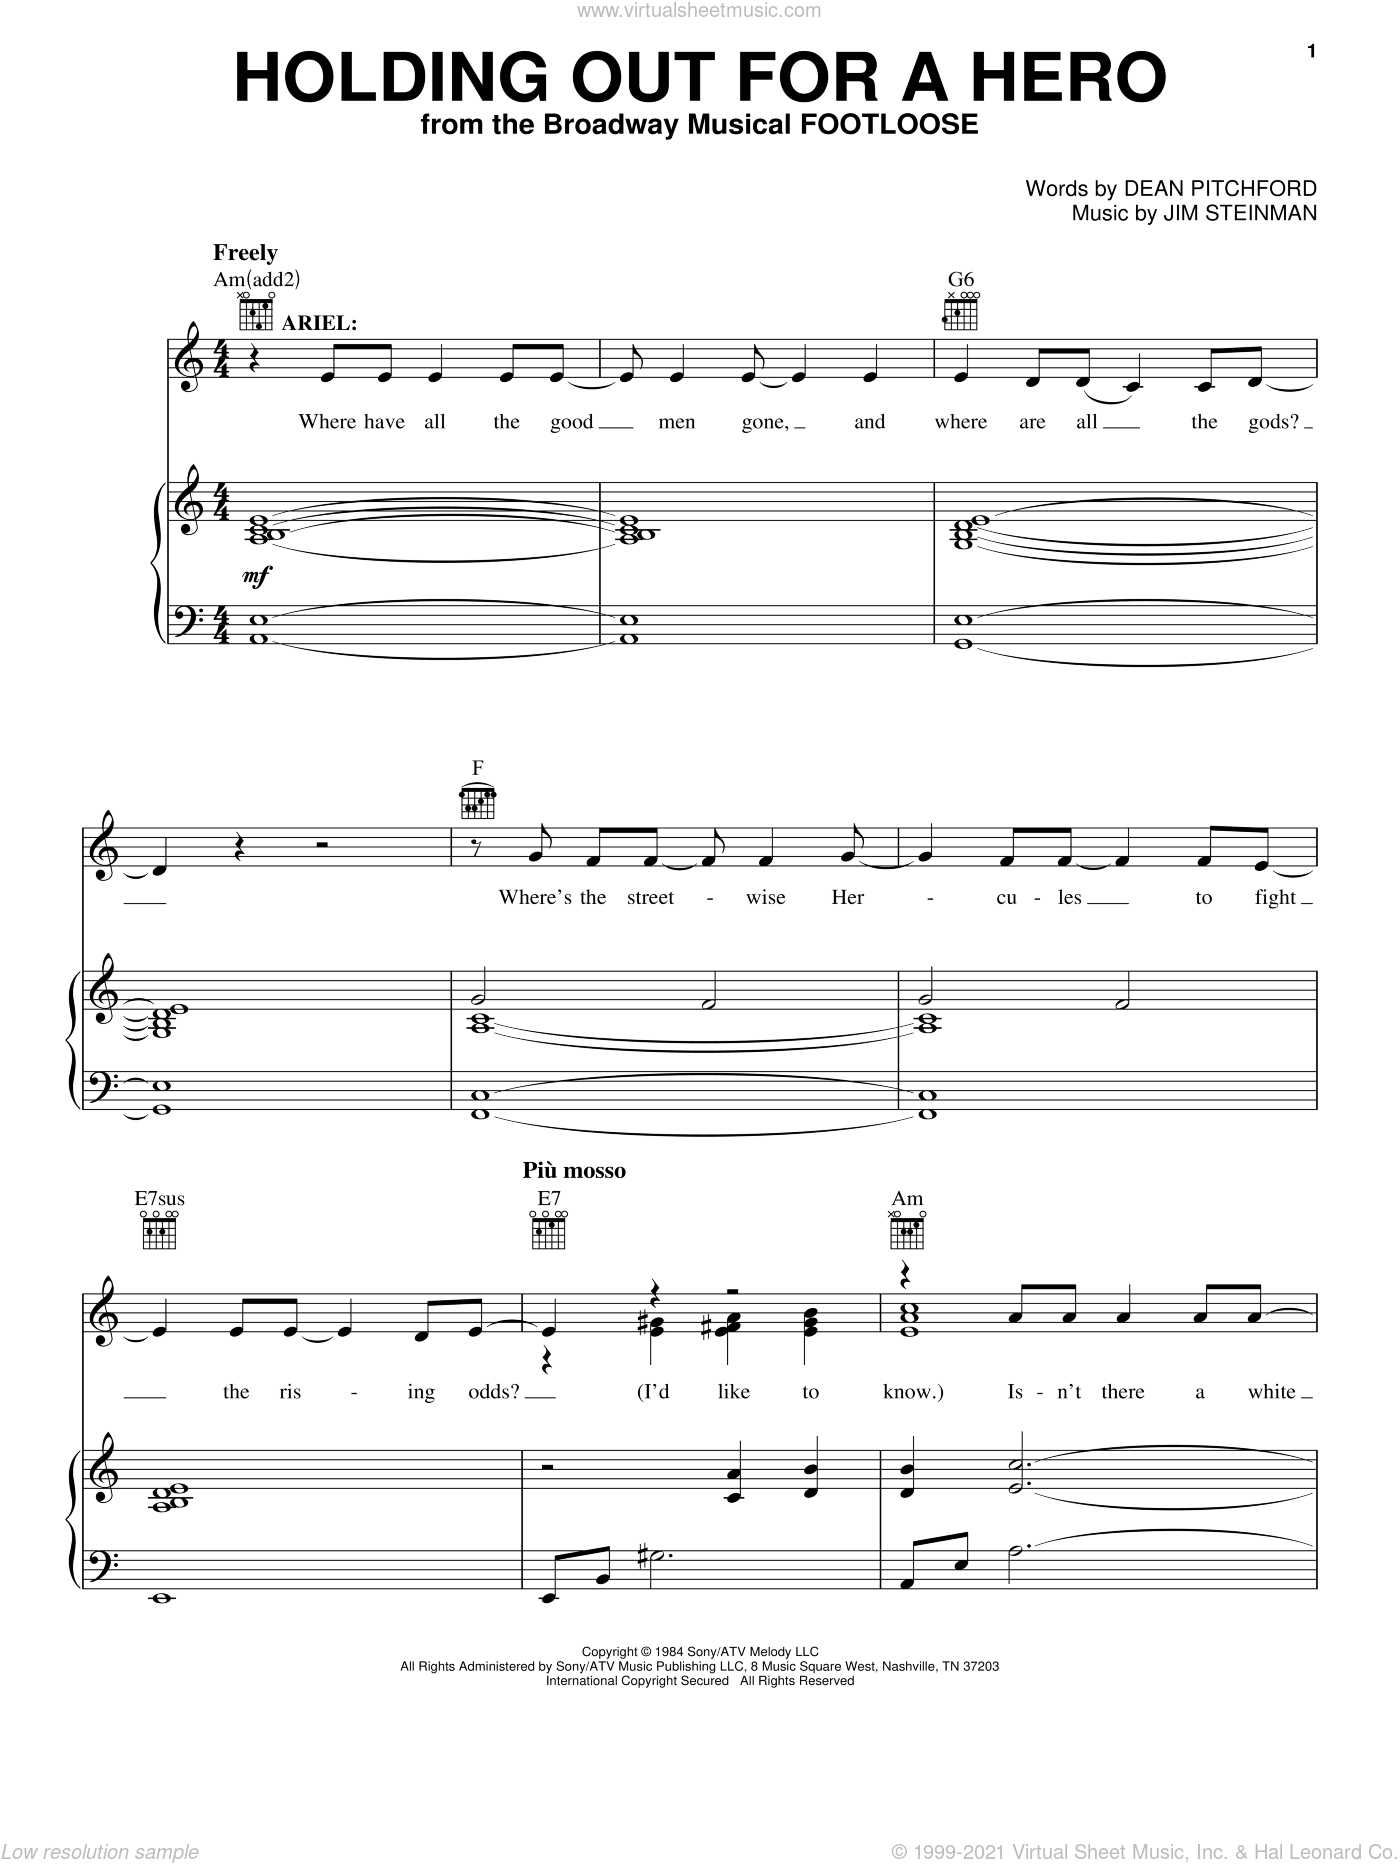 Holding Out For A Hero sheet music for voice, piano or guitar by Bonnie Tyler, Dean Pitchford and Jim Steinman. Score Image Preview.